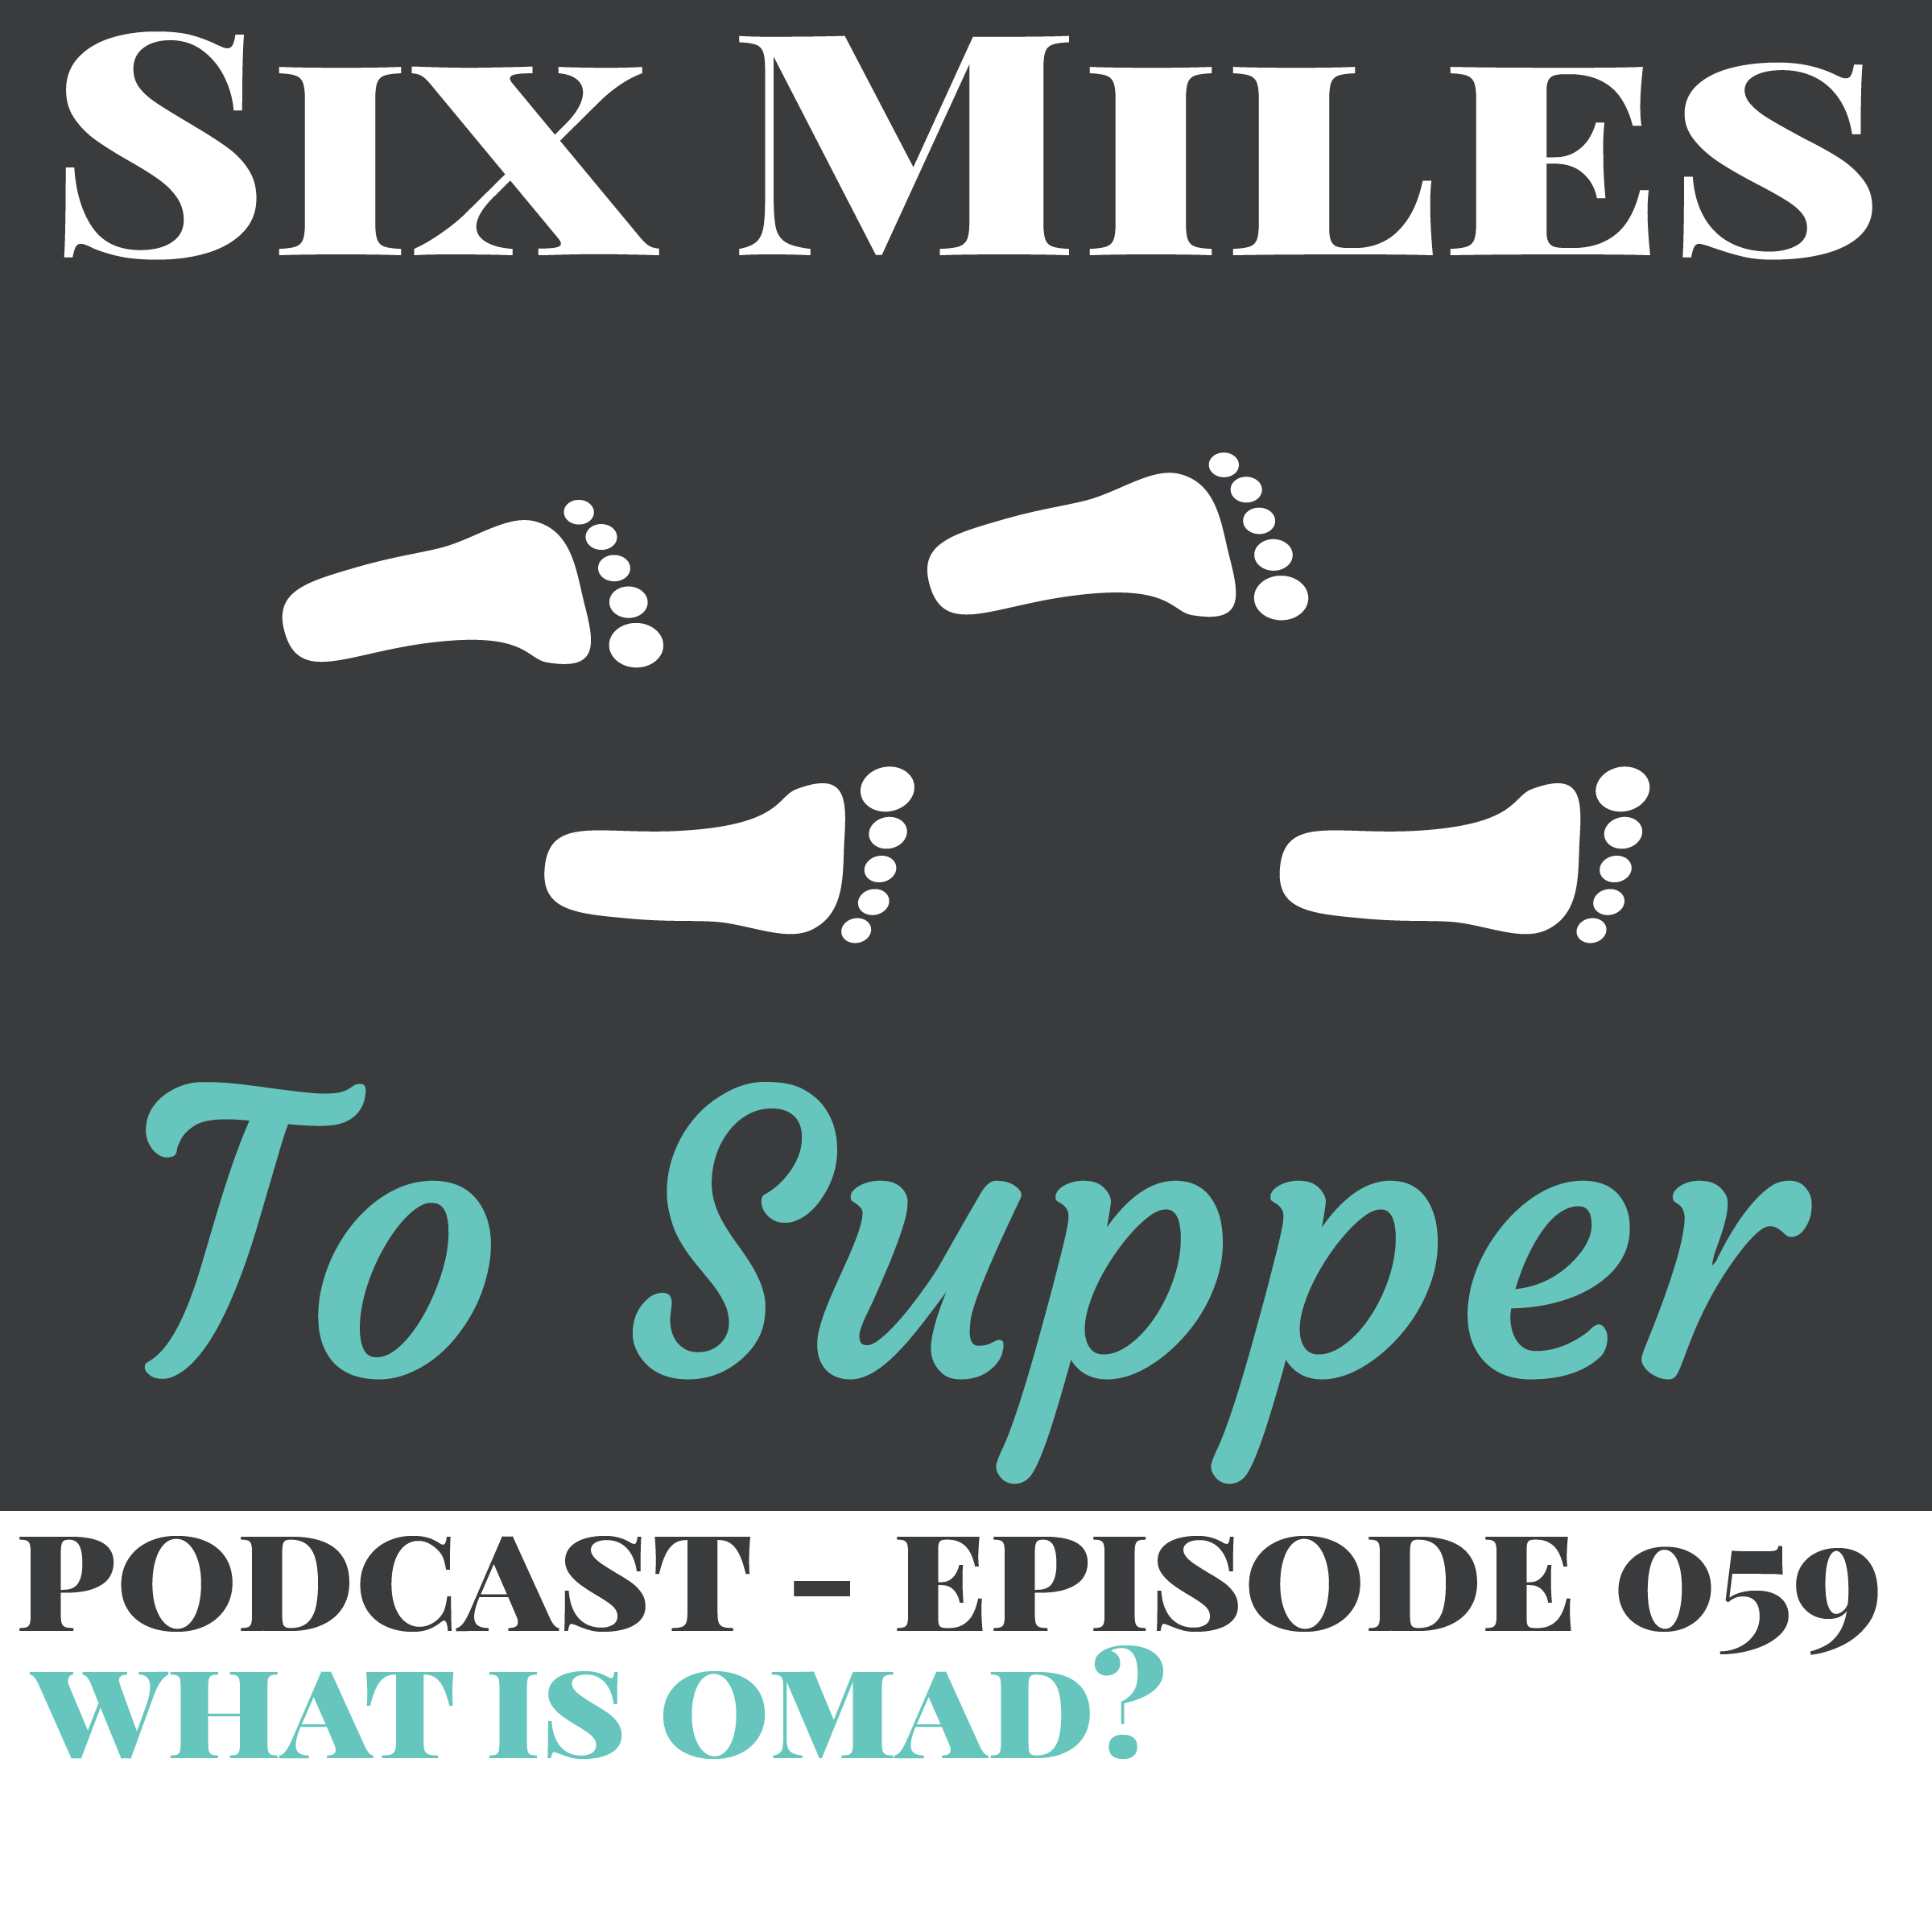 SMTS 059: What is OMAD